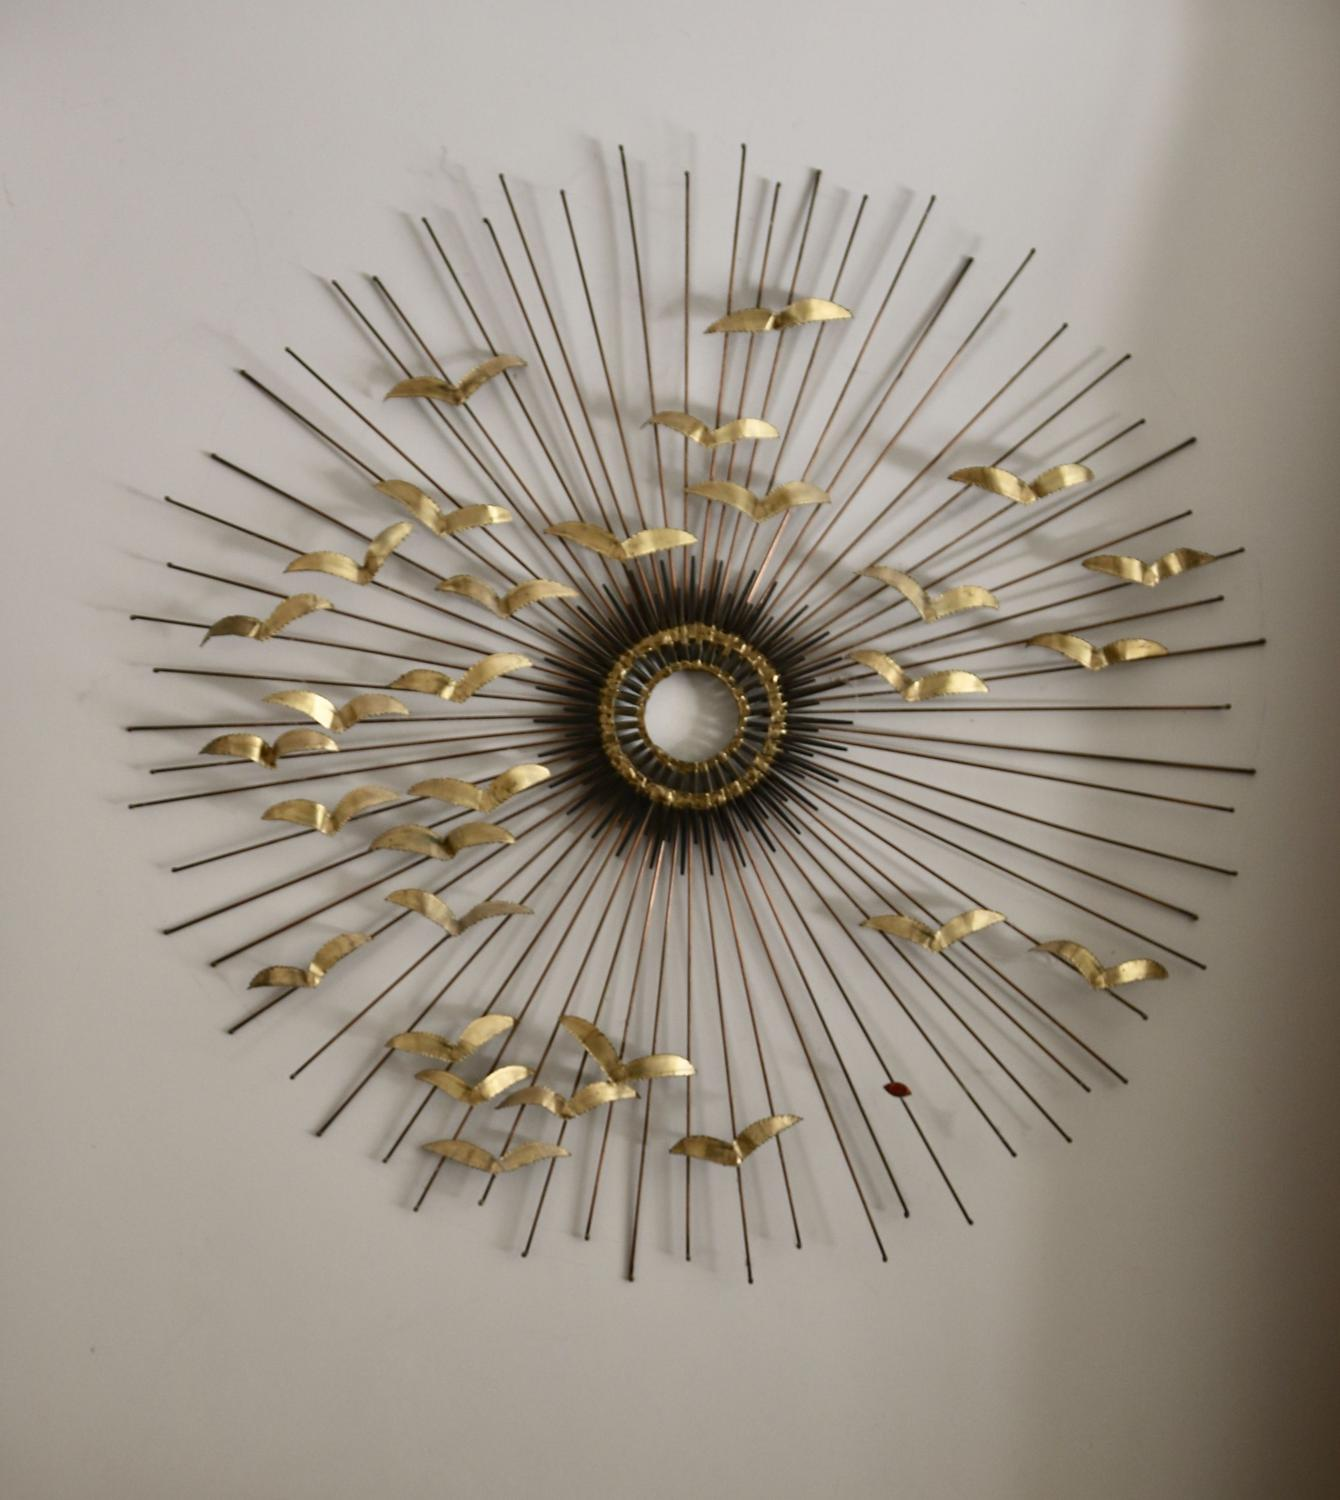 Brass & Metal Wall Sculpture